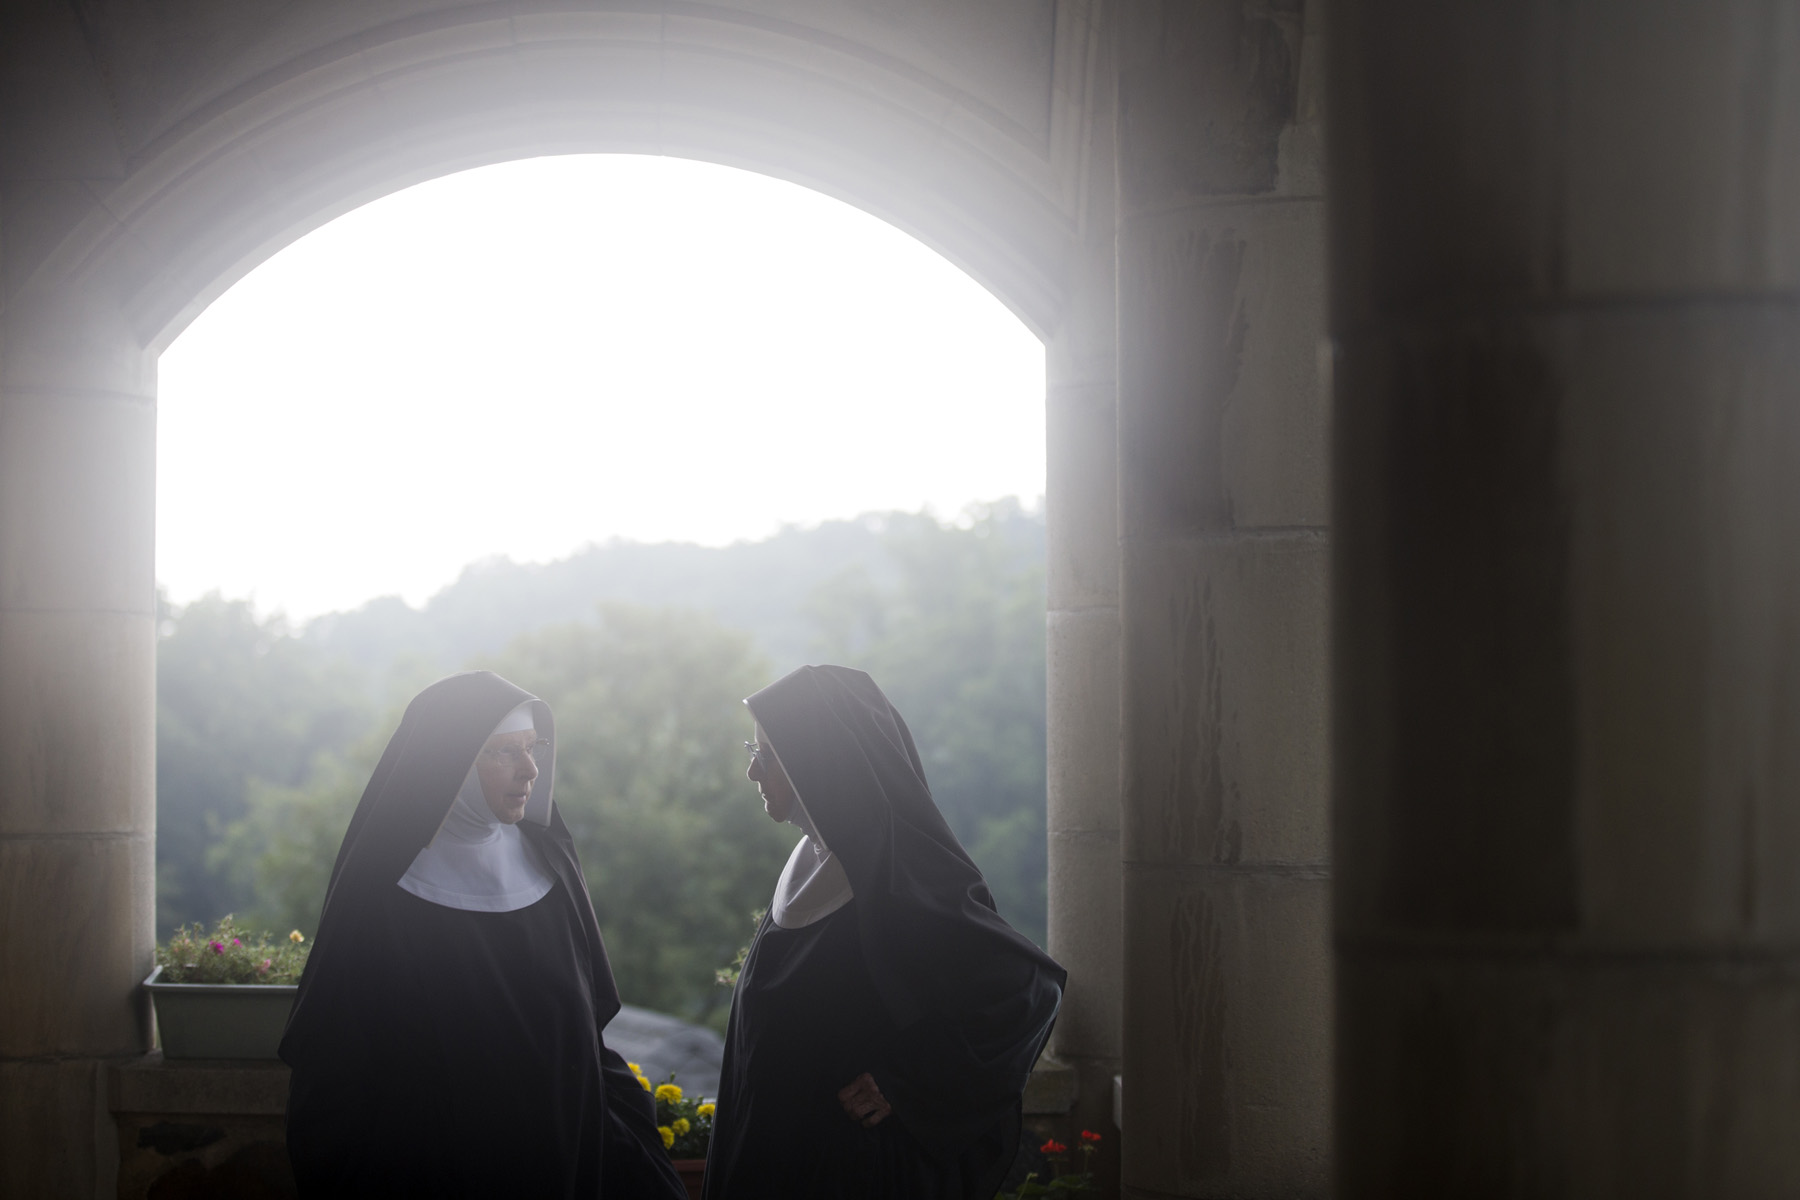 All Saints Sisters of the Poor in Catonsville